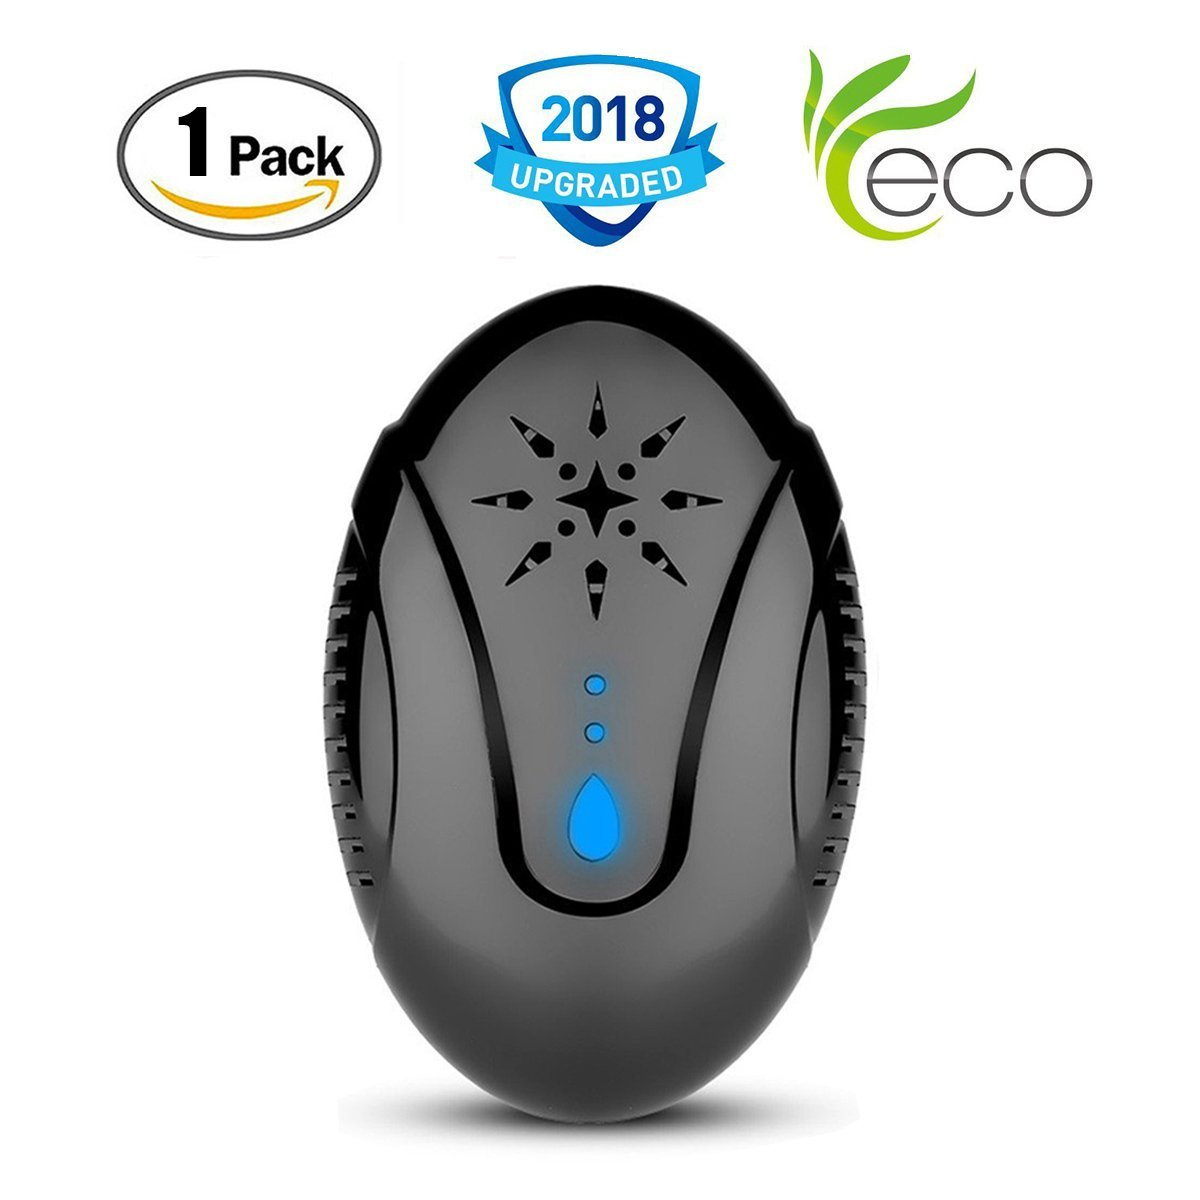 Emopeak Ultrasonic Pest Control Repeller, Pest Repeller Plug-in Insect Repellent for Cockroach, Mice, Rodents, Spiders, Flies, Moquitos, Ants, Flea